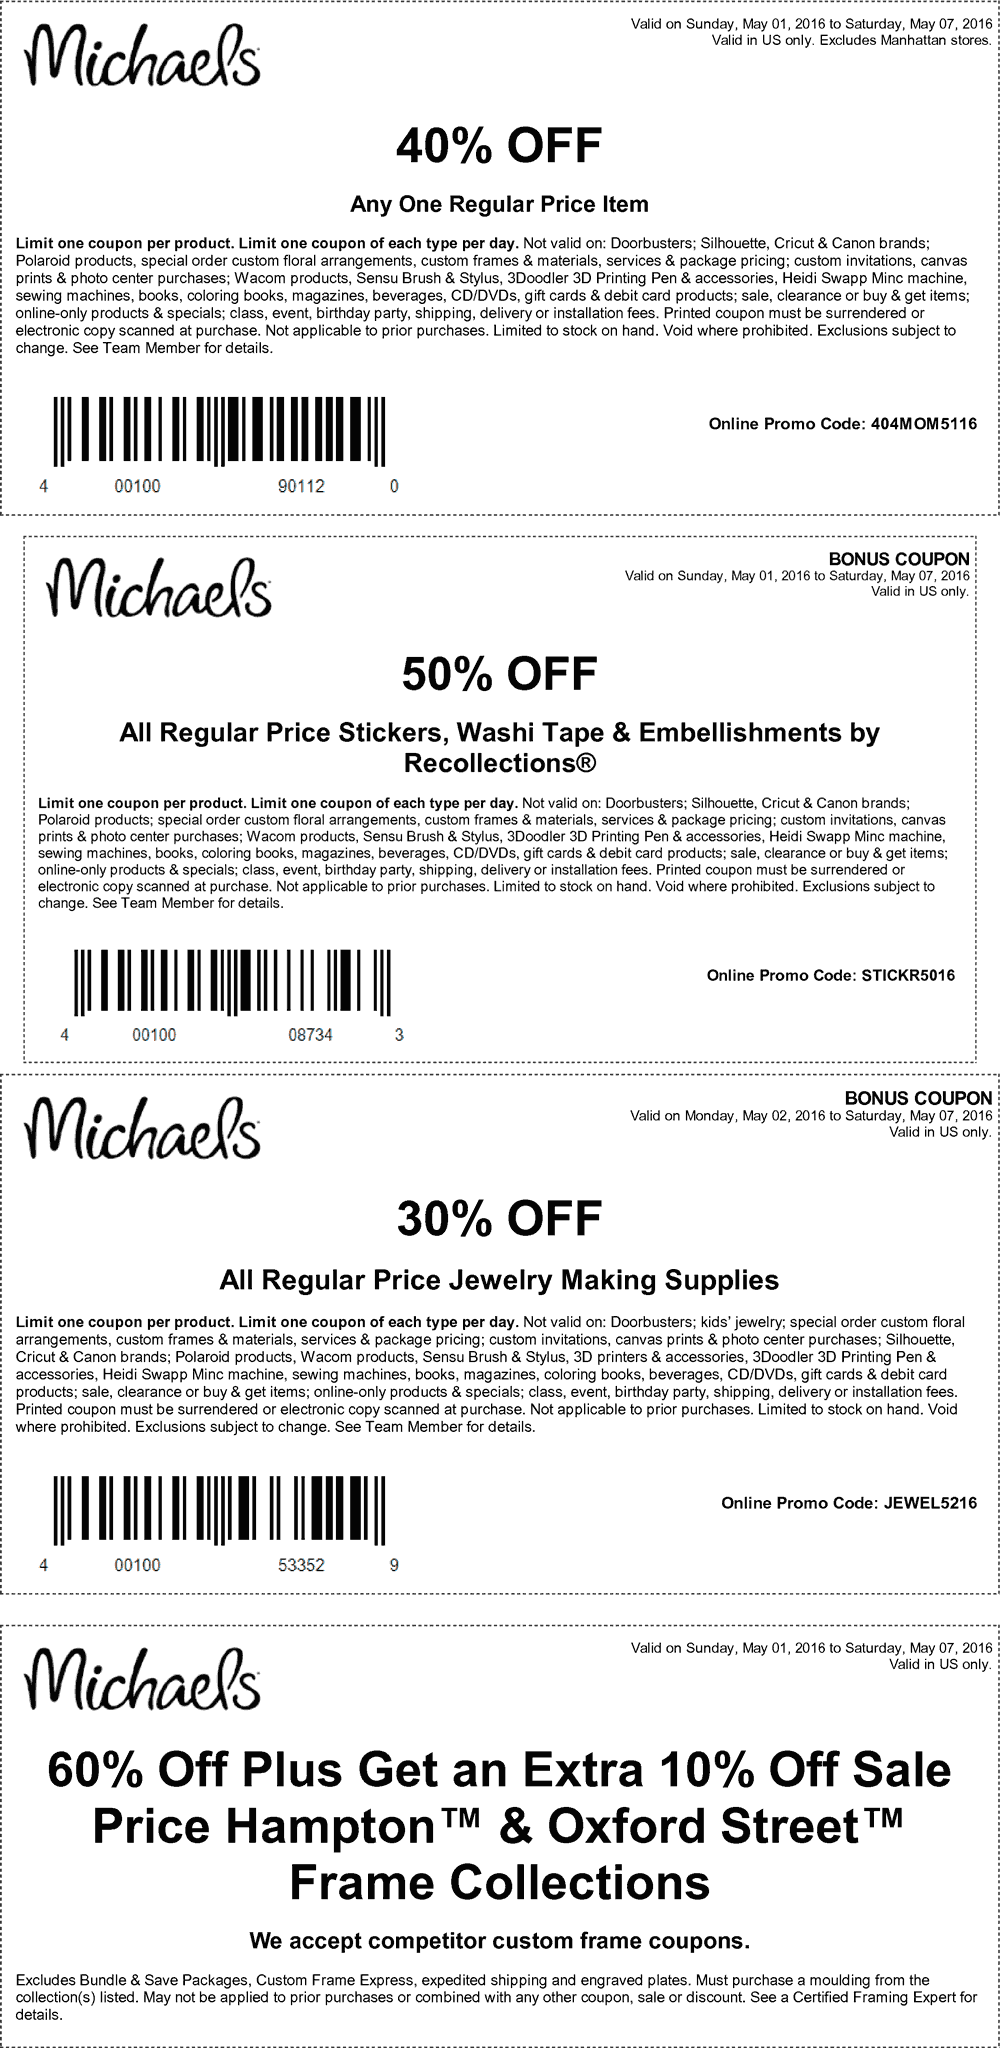 Michaels Coupon April 2017 40% off a single item & more at Michaels, or online via promo code 404MOM5116